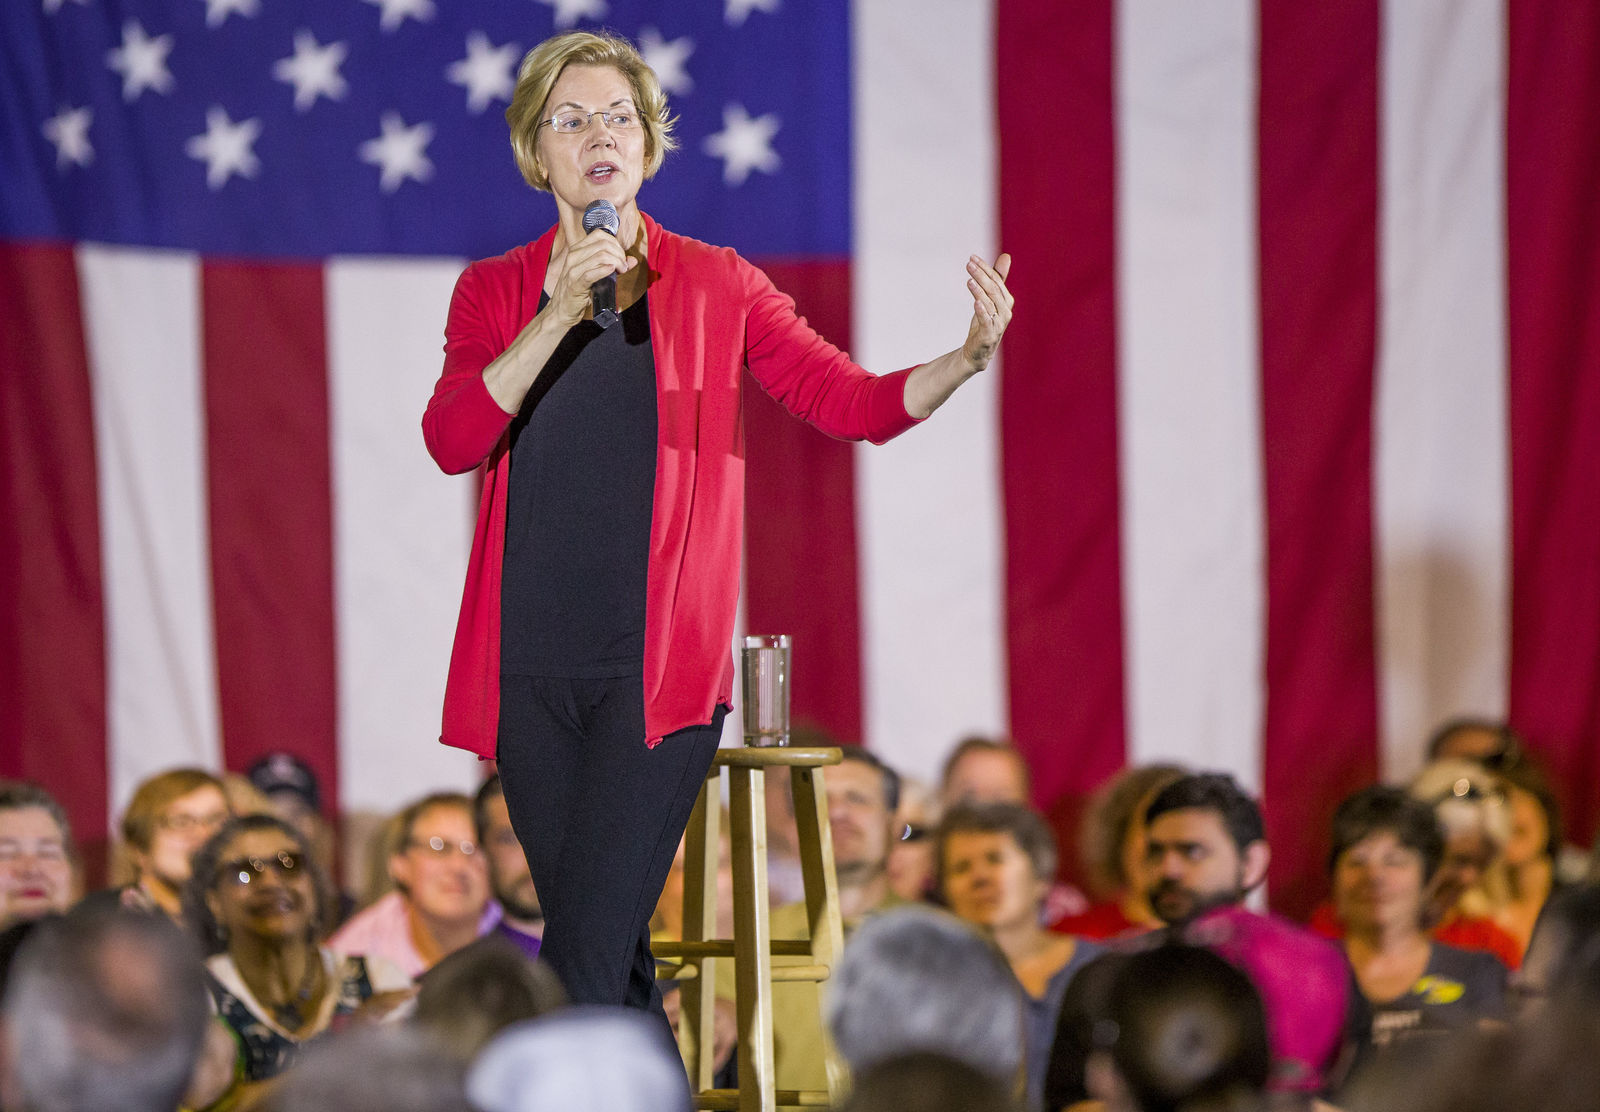 Democratic presidential candidate Elizabeth Wareen takes the stage for her Elkhart Community Conversation event on Wednesday, June 5, 2019, at the RV/MH Hall of Fame and Museum in Elkhart, Ind. (Robert Franklin/South Bend Tribune via AP)